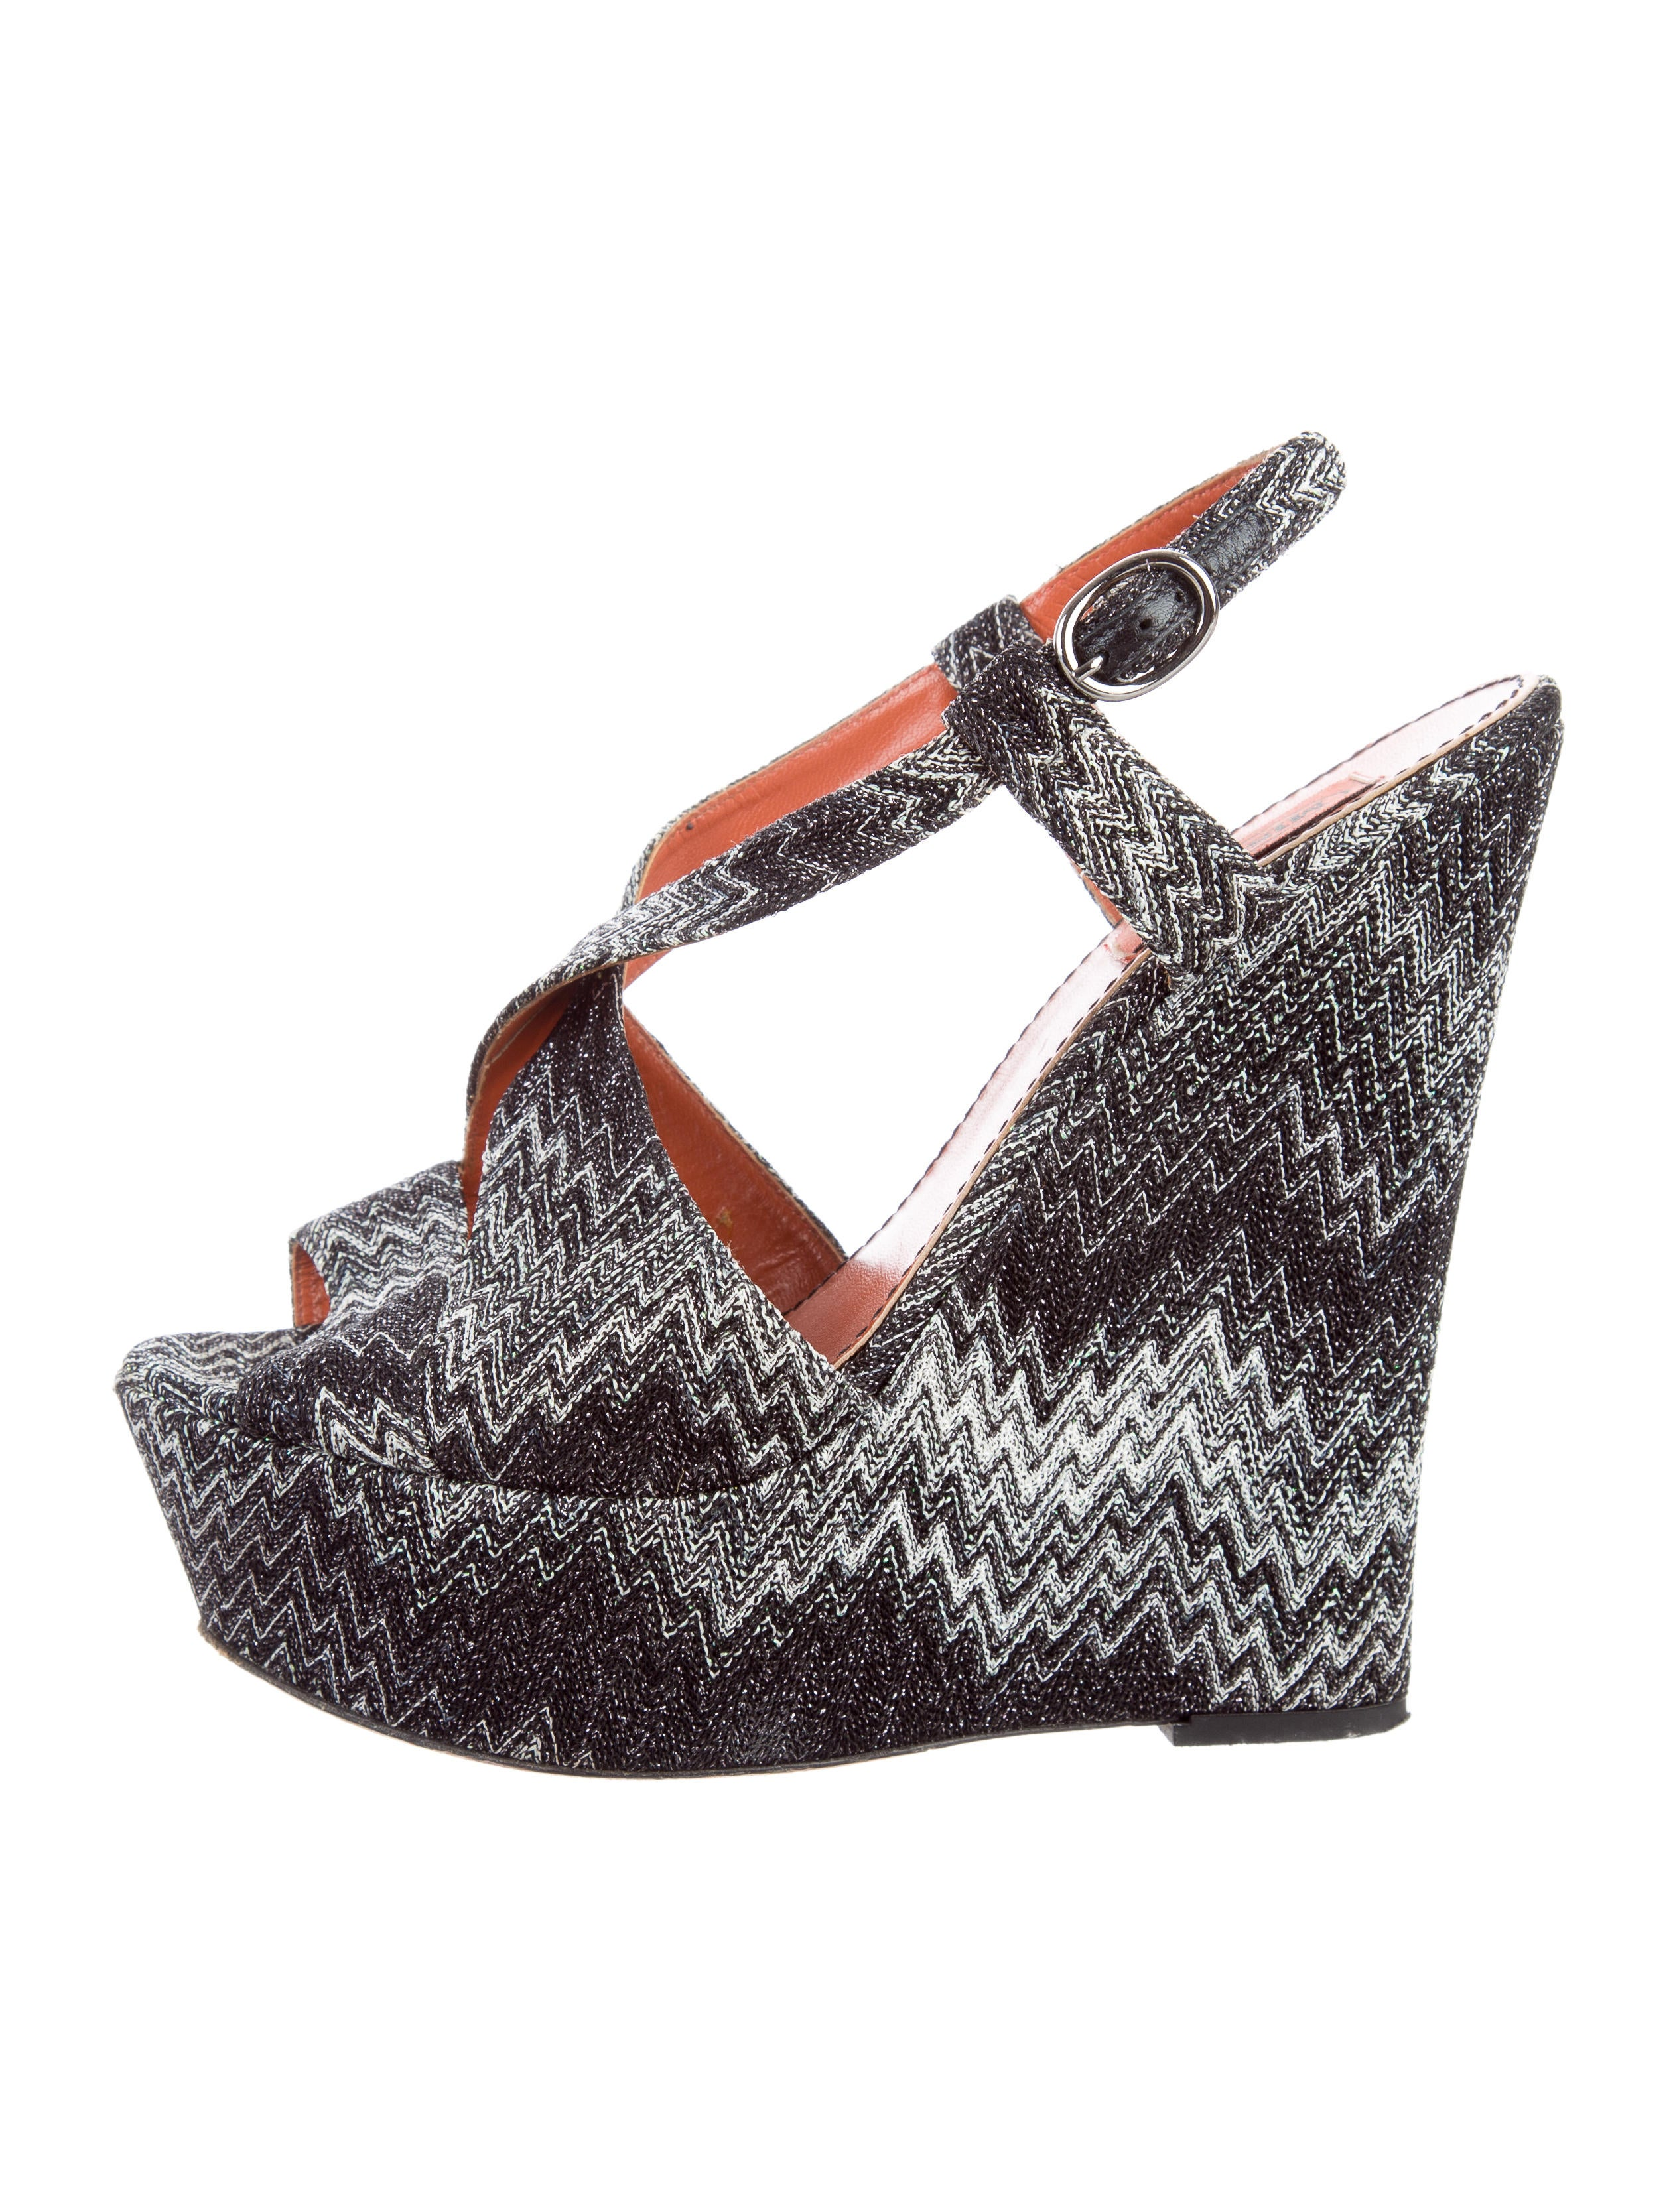 for nice sale online cheap official Missoni Chevron Platform Wedges online cheap online cheap sale big discount clearance free shipping JreSBvml